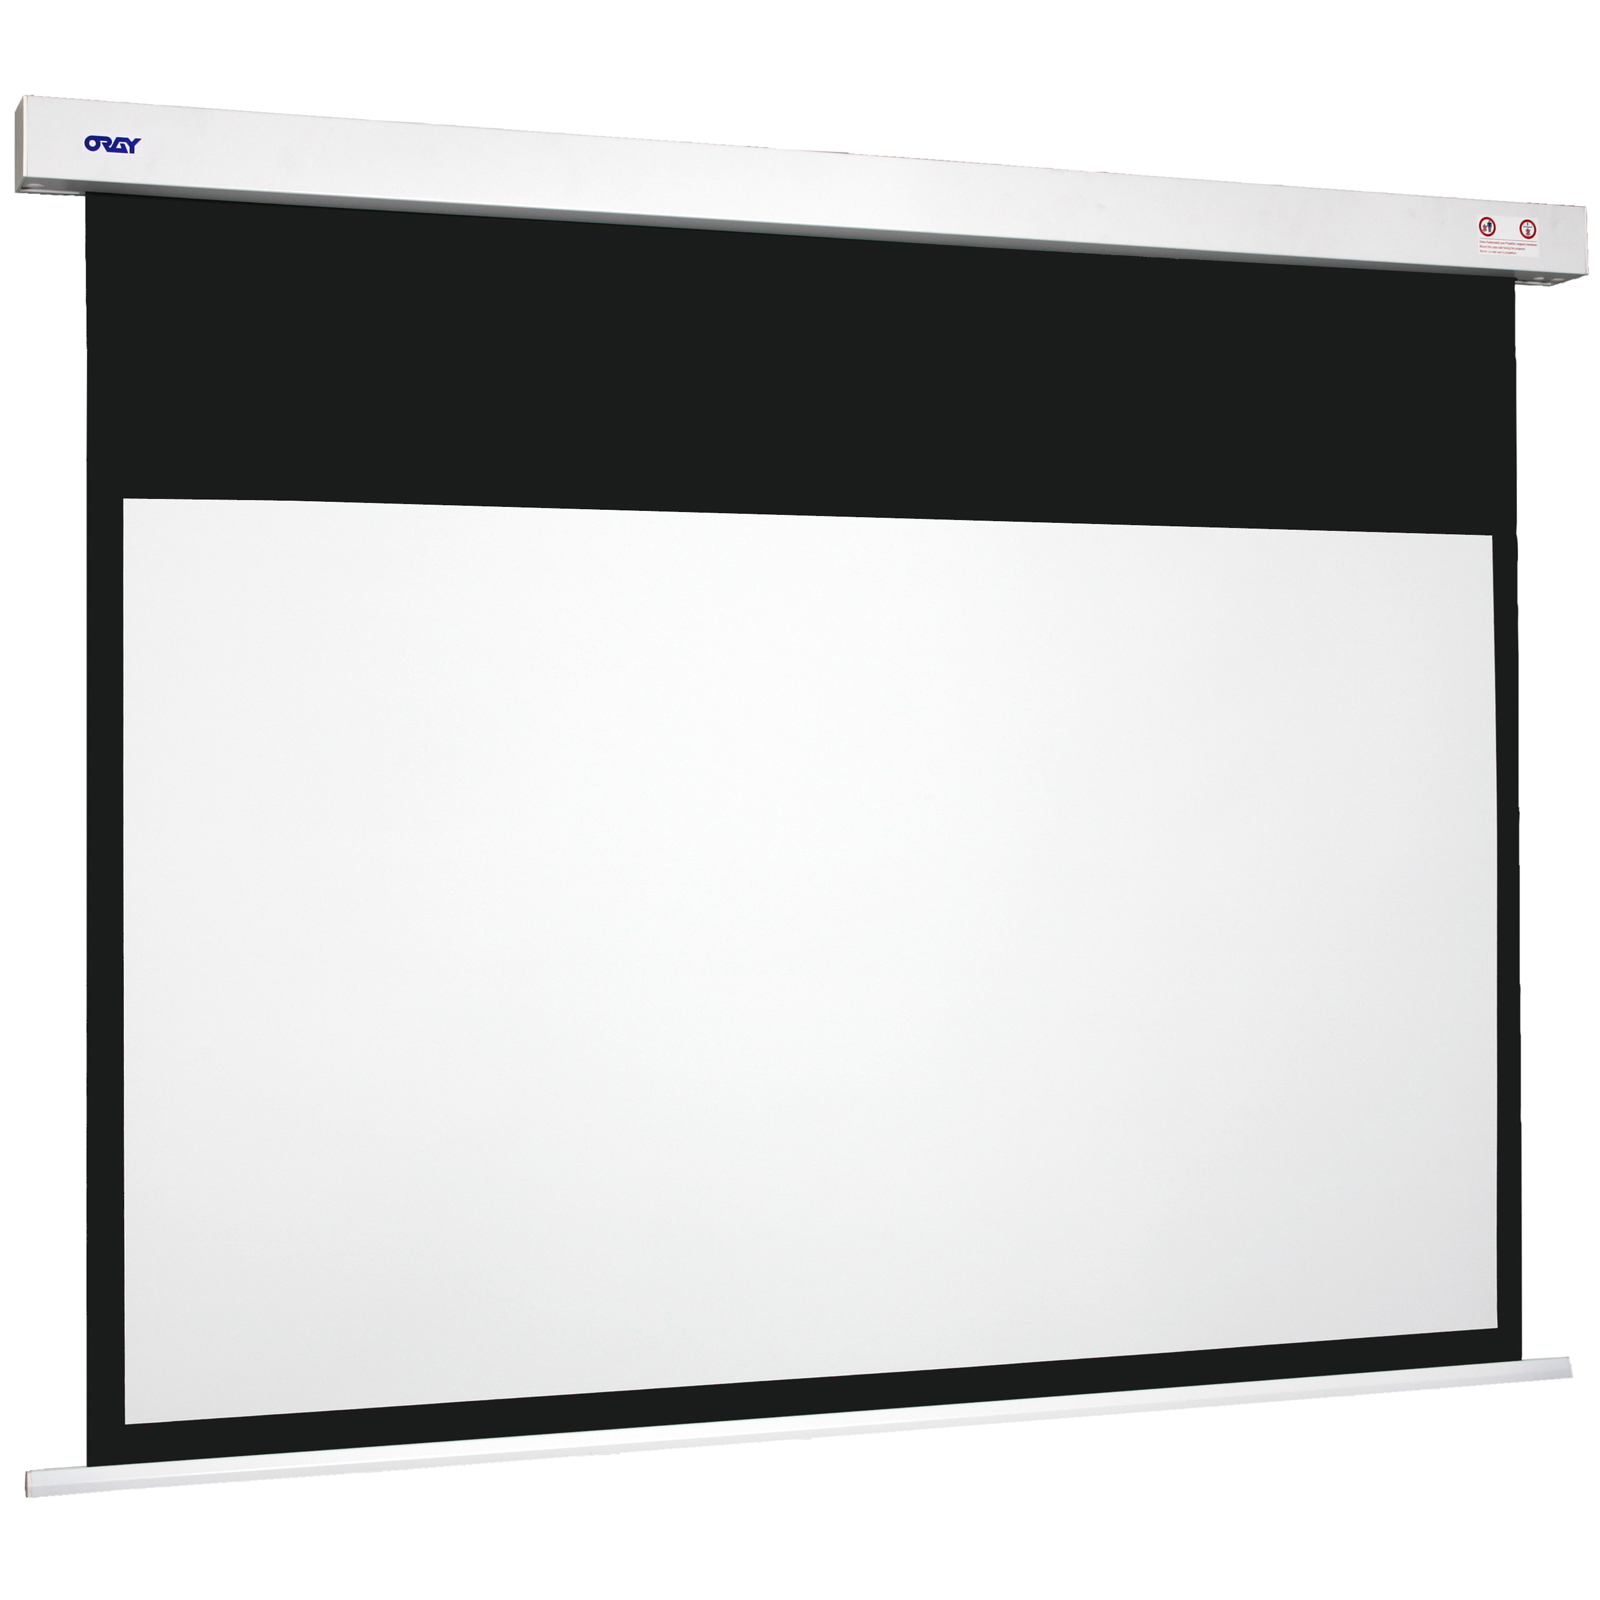 Ecran Home Cinema Motorisé Oray Square Home Cinema 135 X 240 Cm